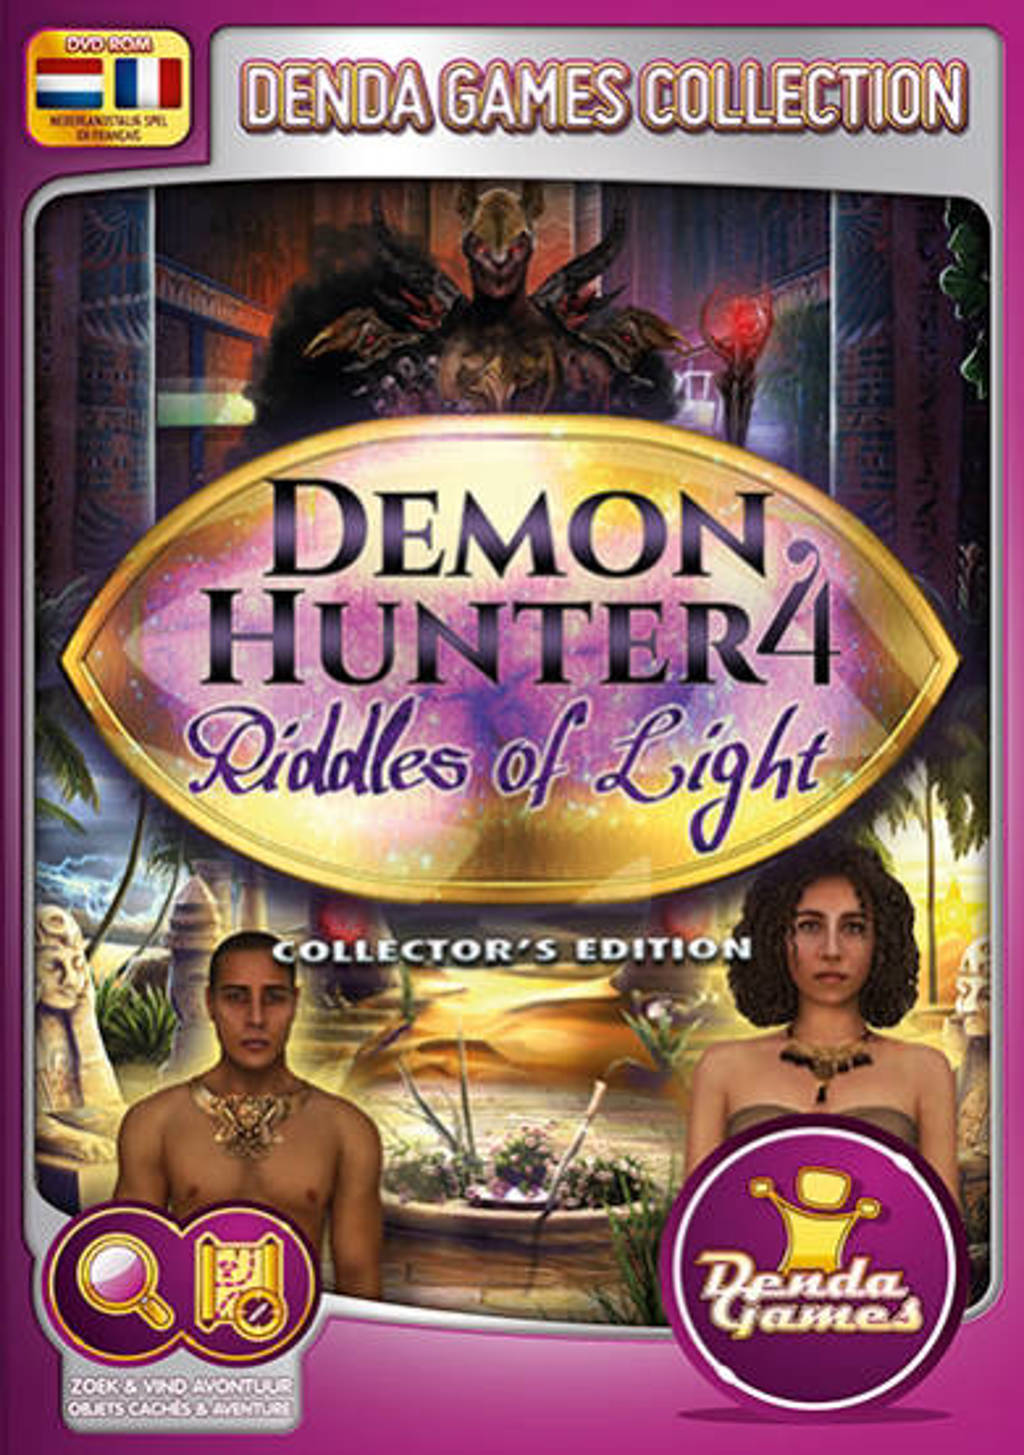 Demon hunter 4 - Riddles of light (Collectors edition) (PC)